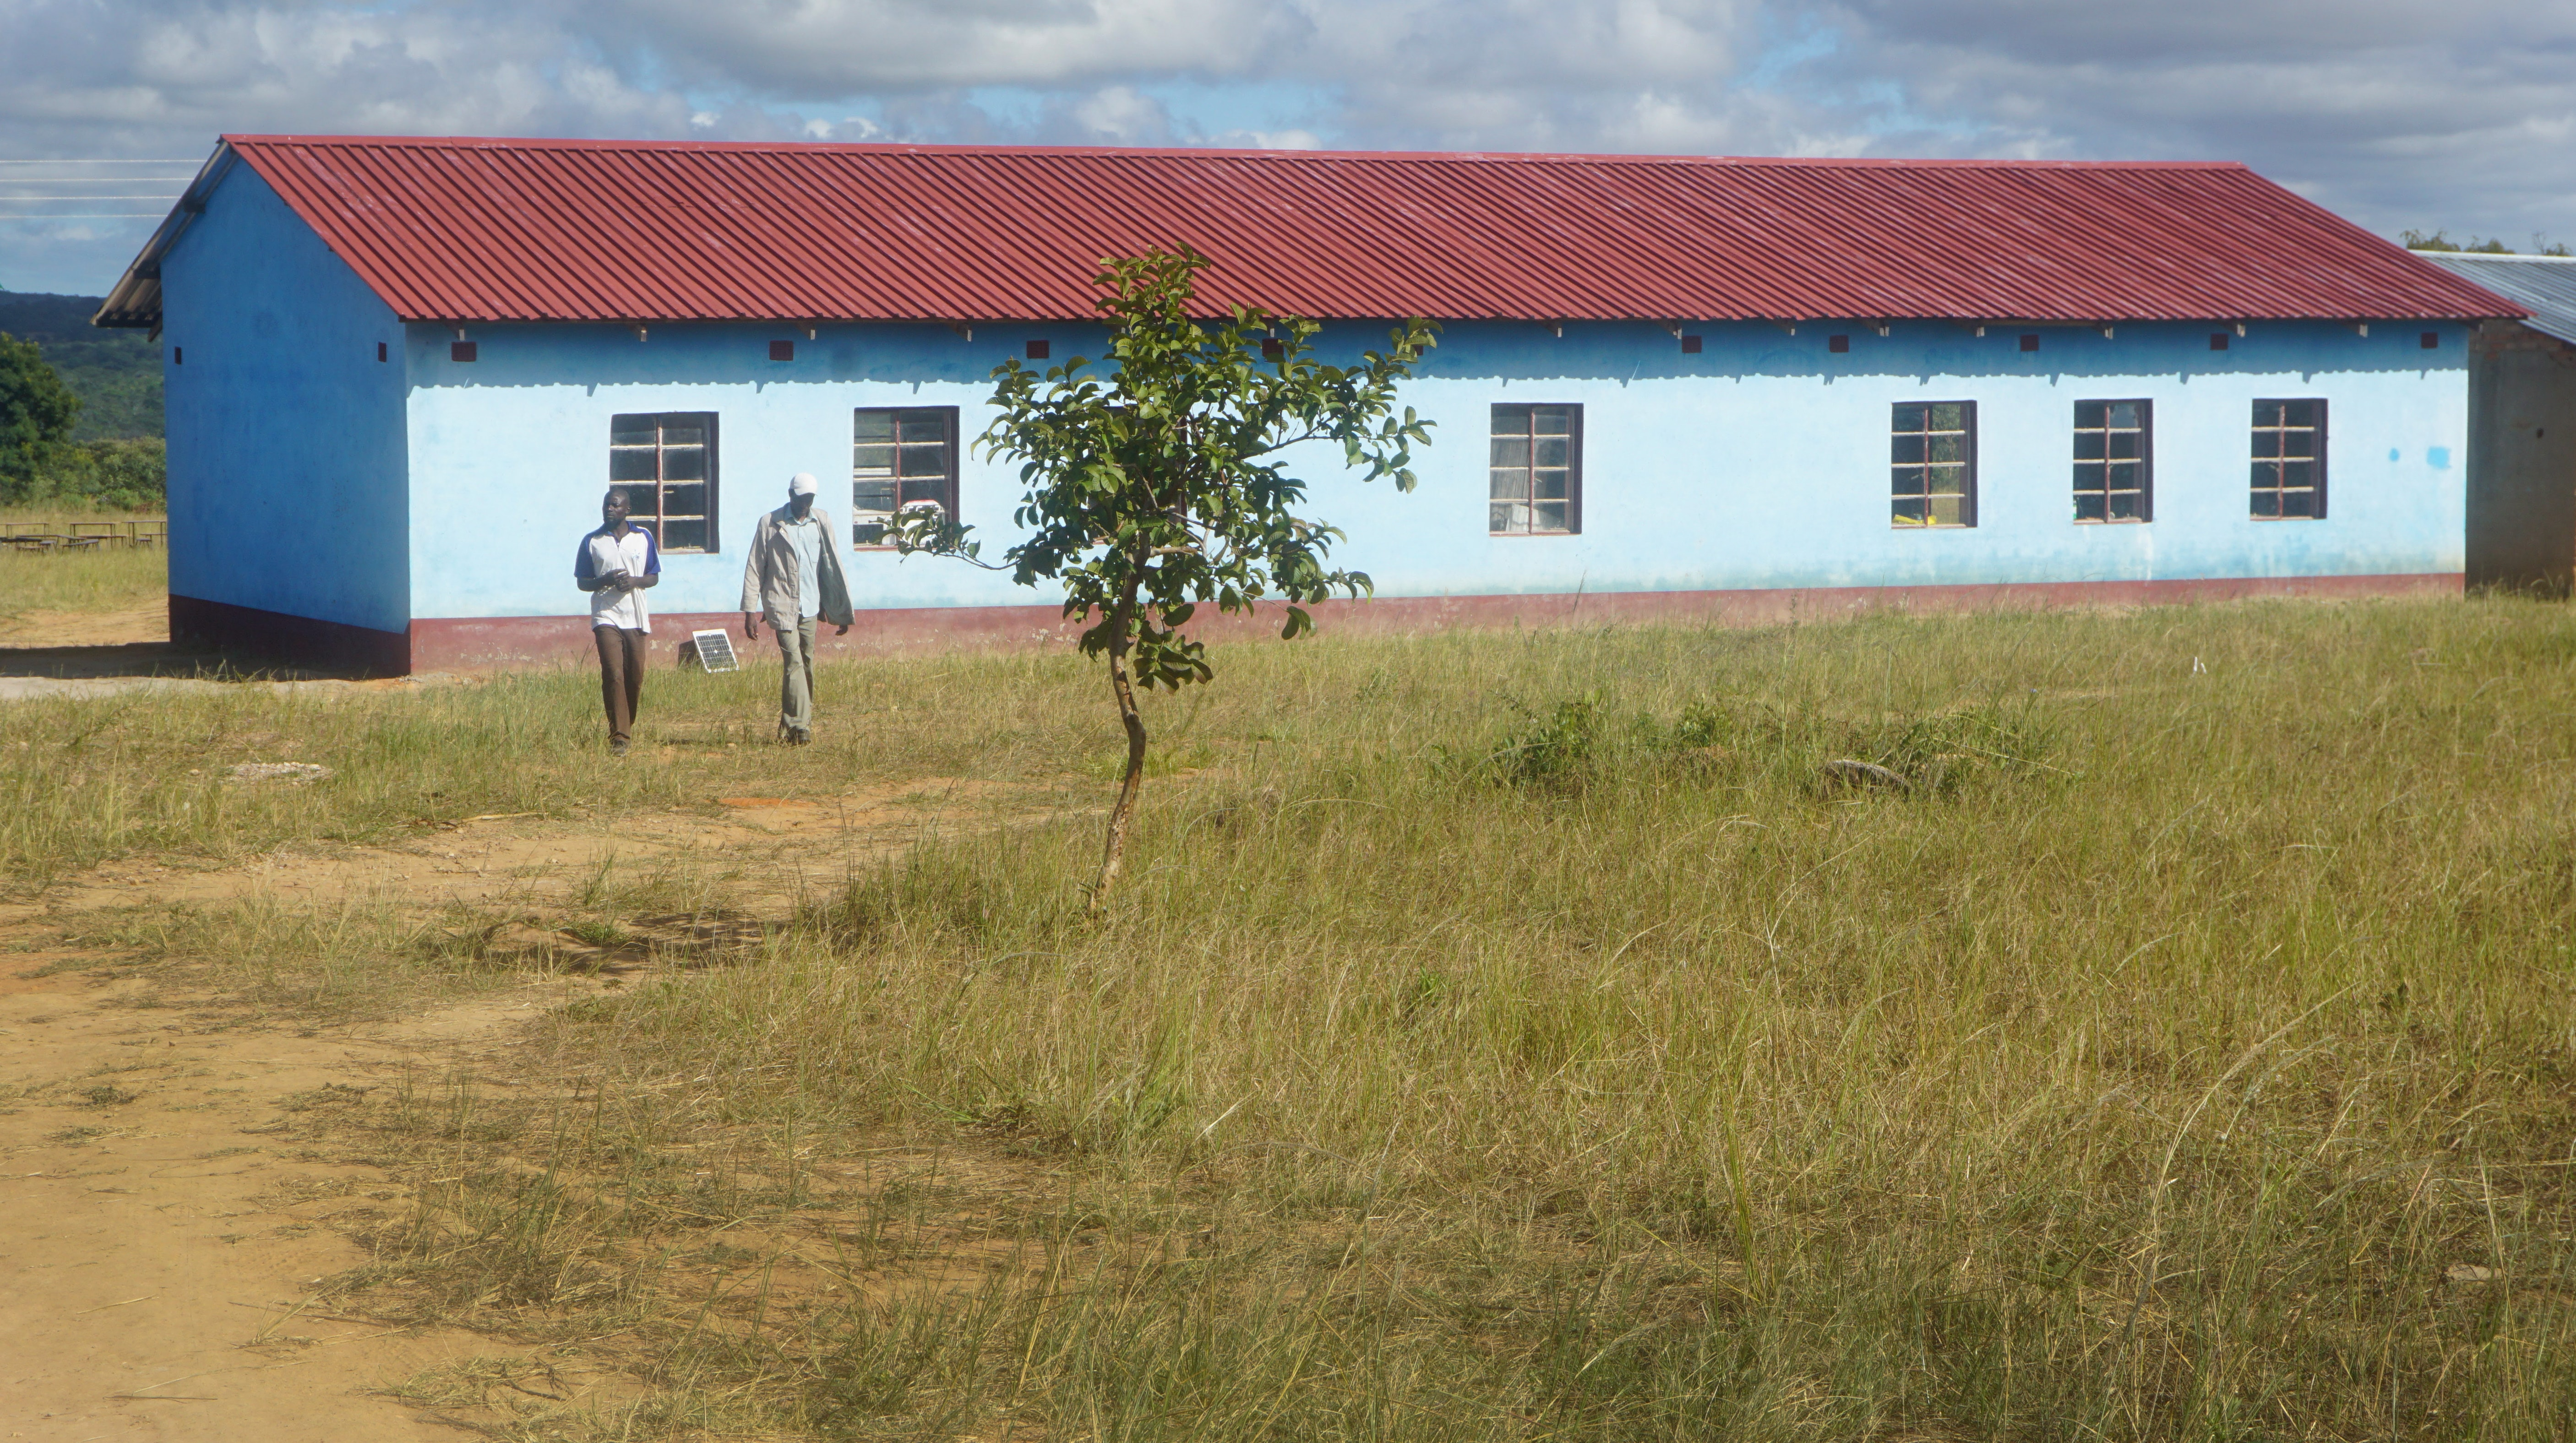 View of new construction at Ngundu Primary School in Buhera, Zimbabwe.  The school, which was on the verge of closing, now has five new classrooms, teachers' quarters and offices. Photo by Kudzai Chingwe, UMNS.